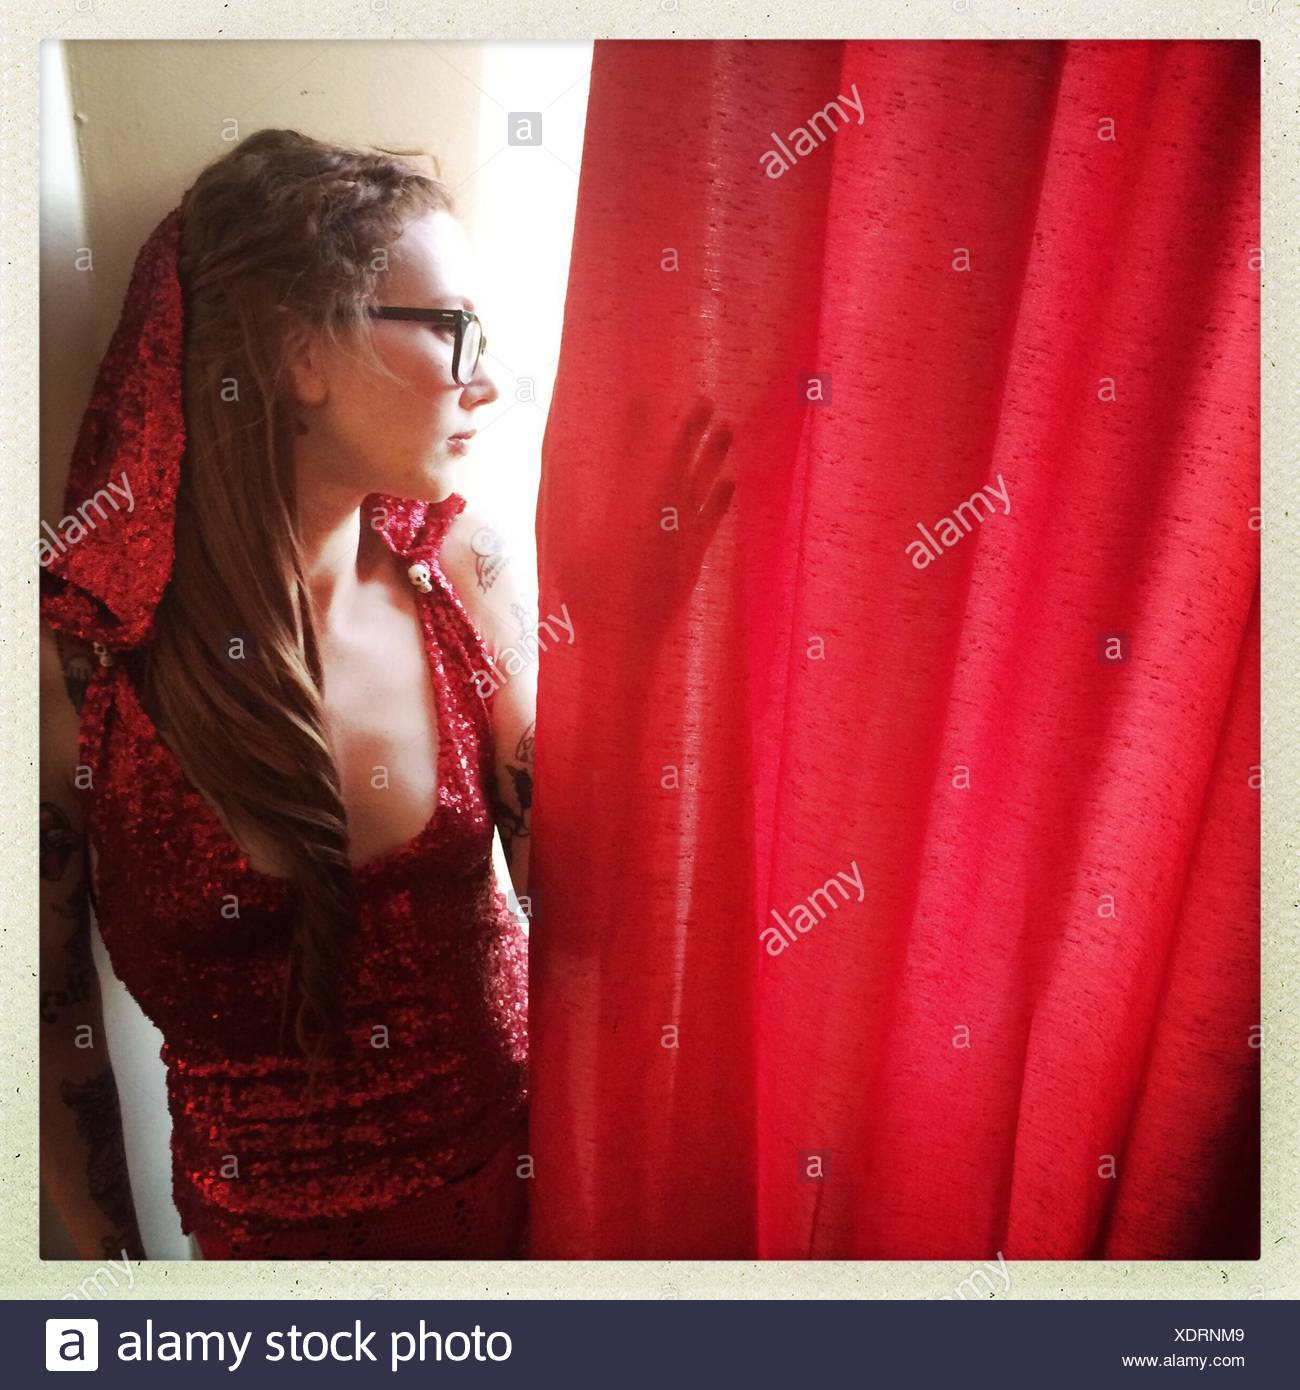 Young Woman Looking Behind Red Curtain - Stock Image